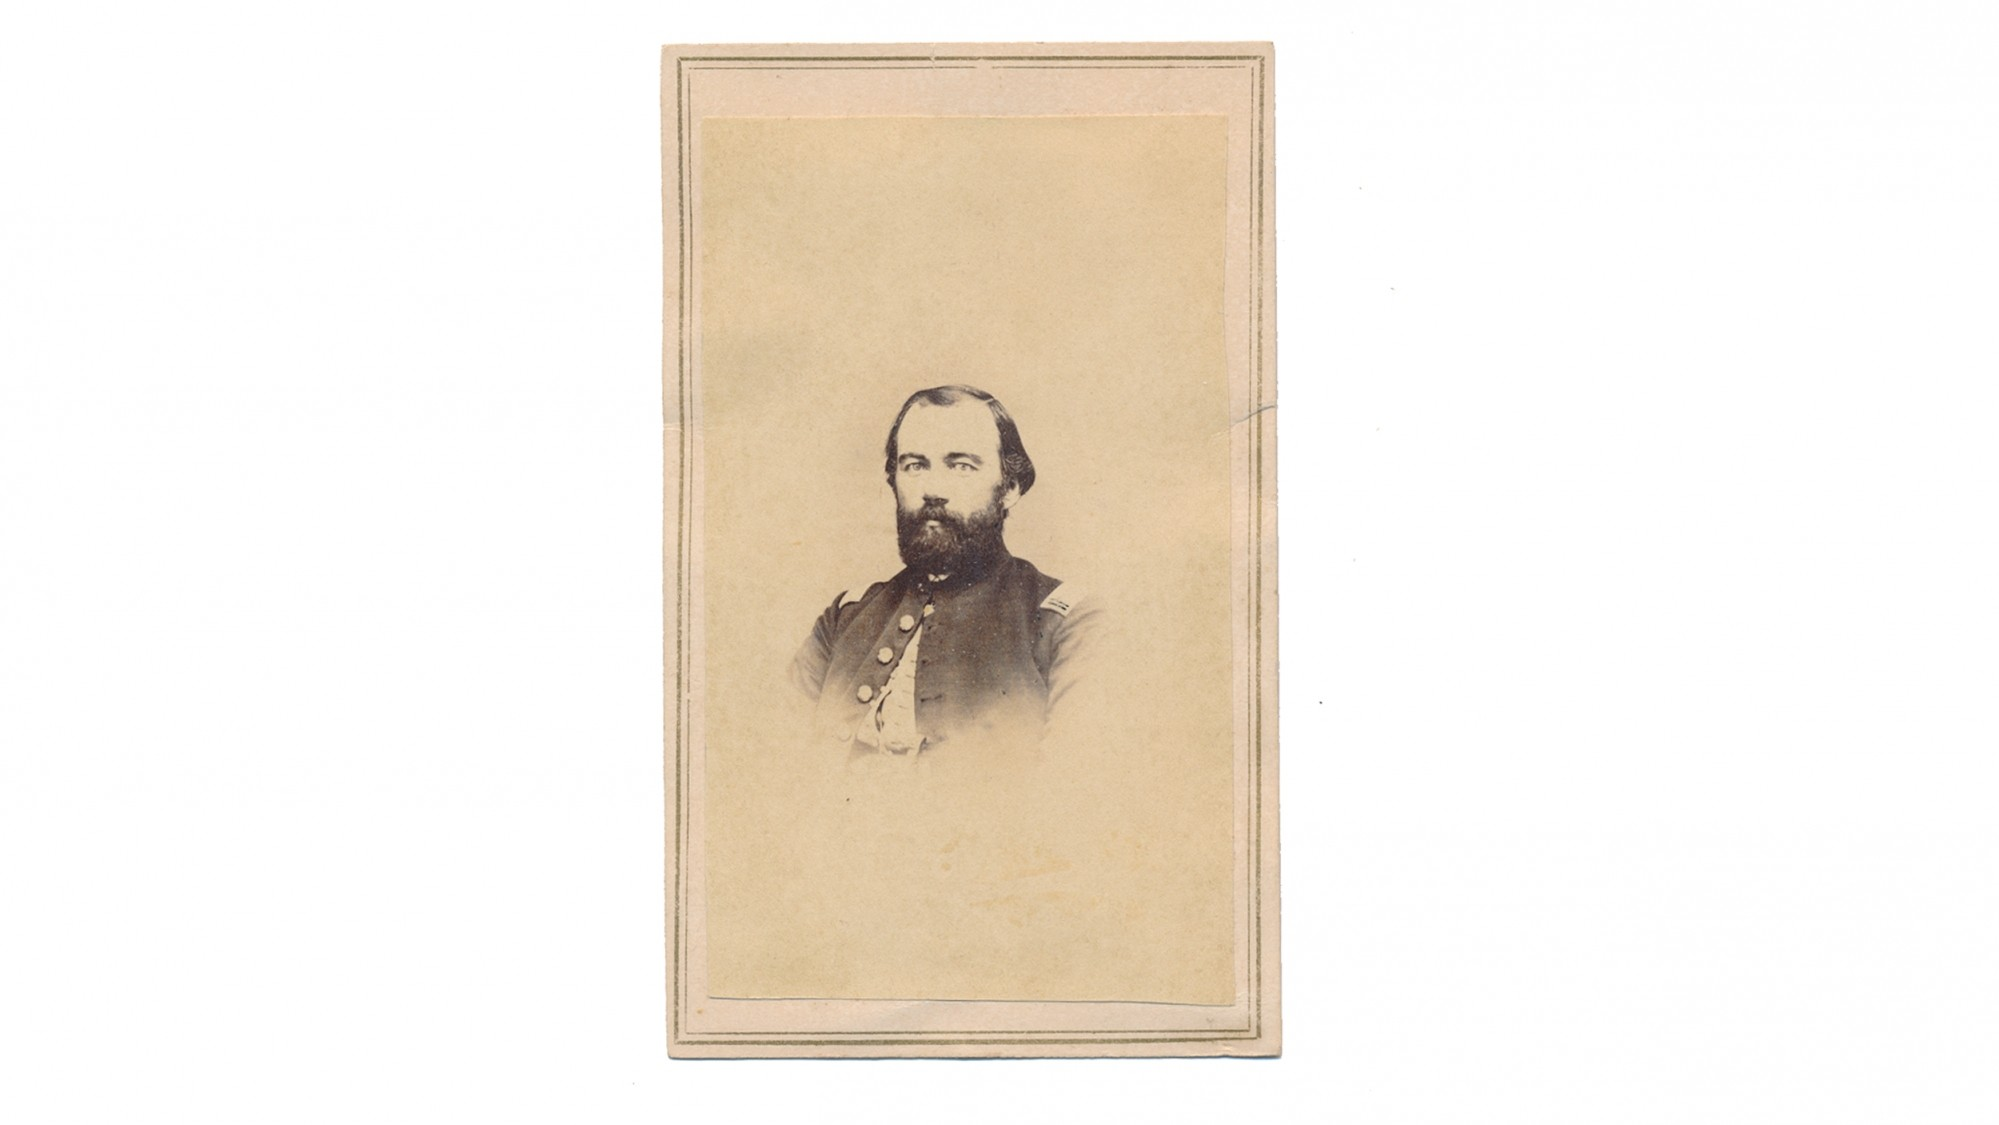 CDV OF JAMES W. BENEDICT, 124TH NEW YORK INFANTRY